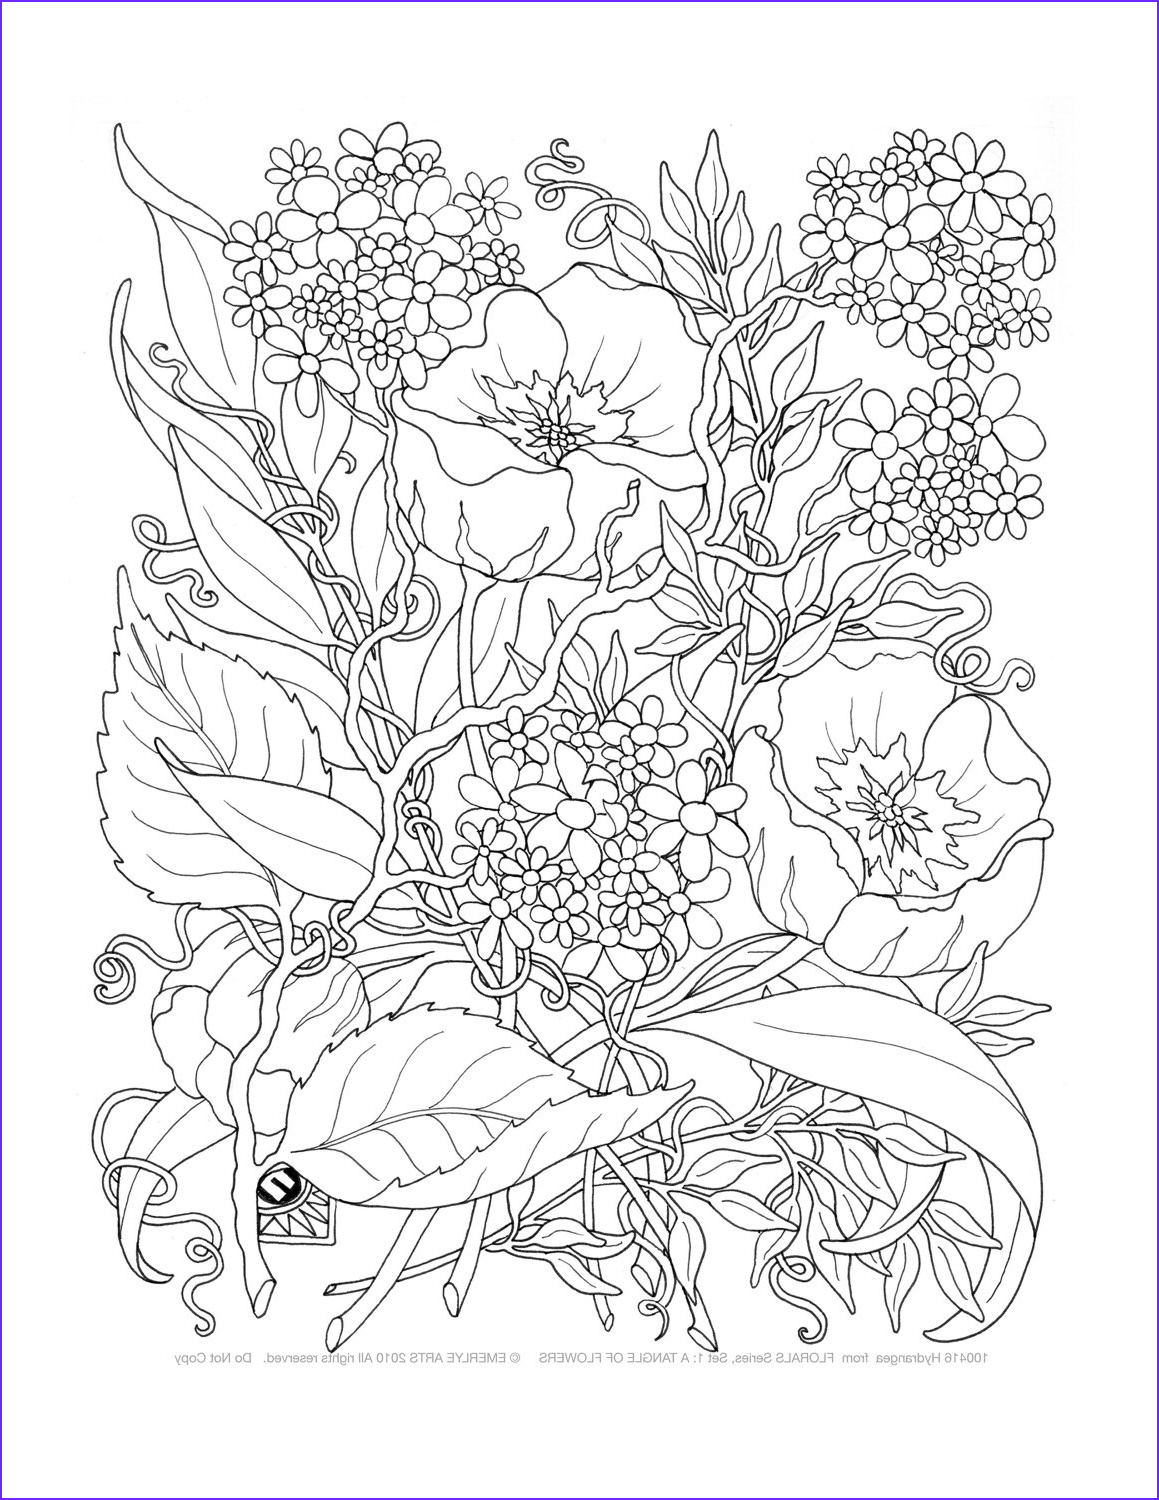 Free Coloring Pages for Adults Flowers Awesome Photos Coloring Pages for Grown Ups Anti Stress Coloring